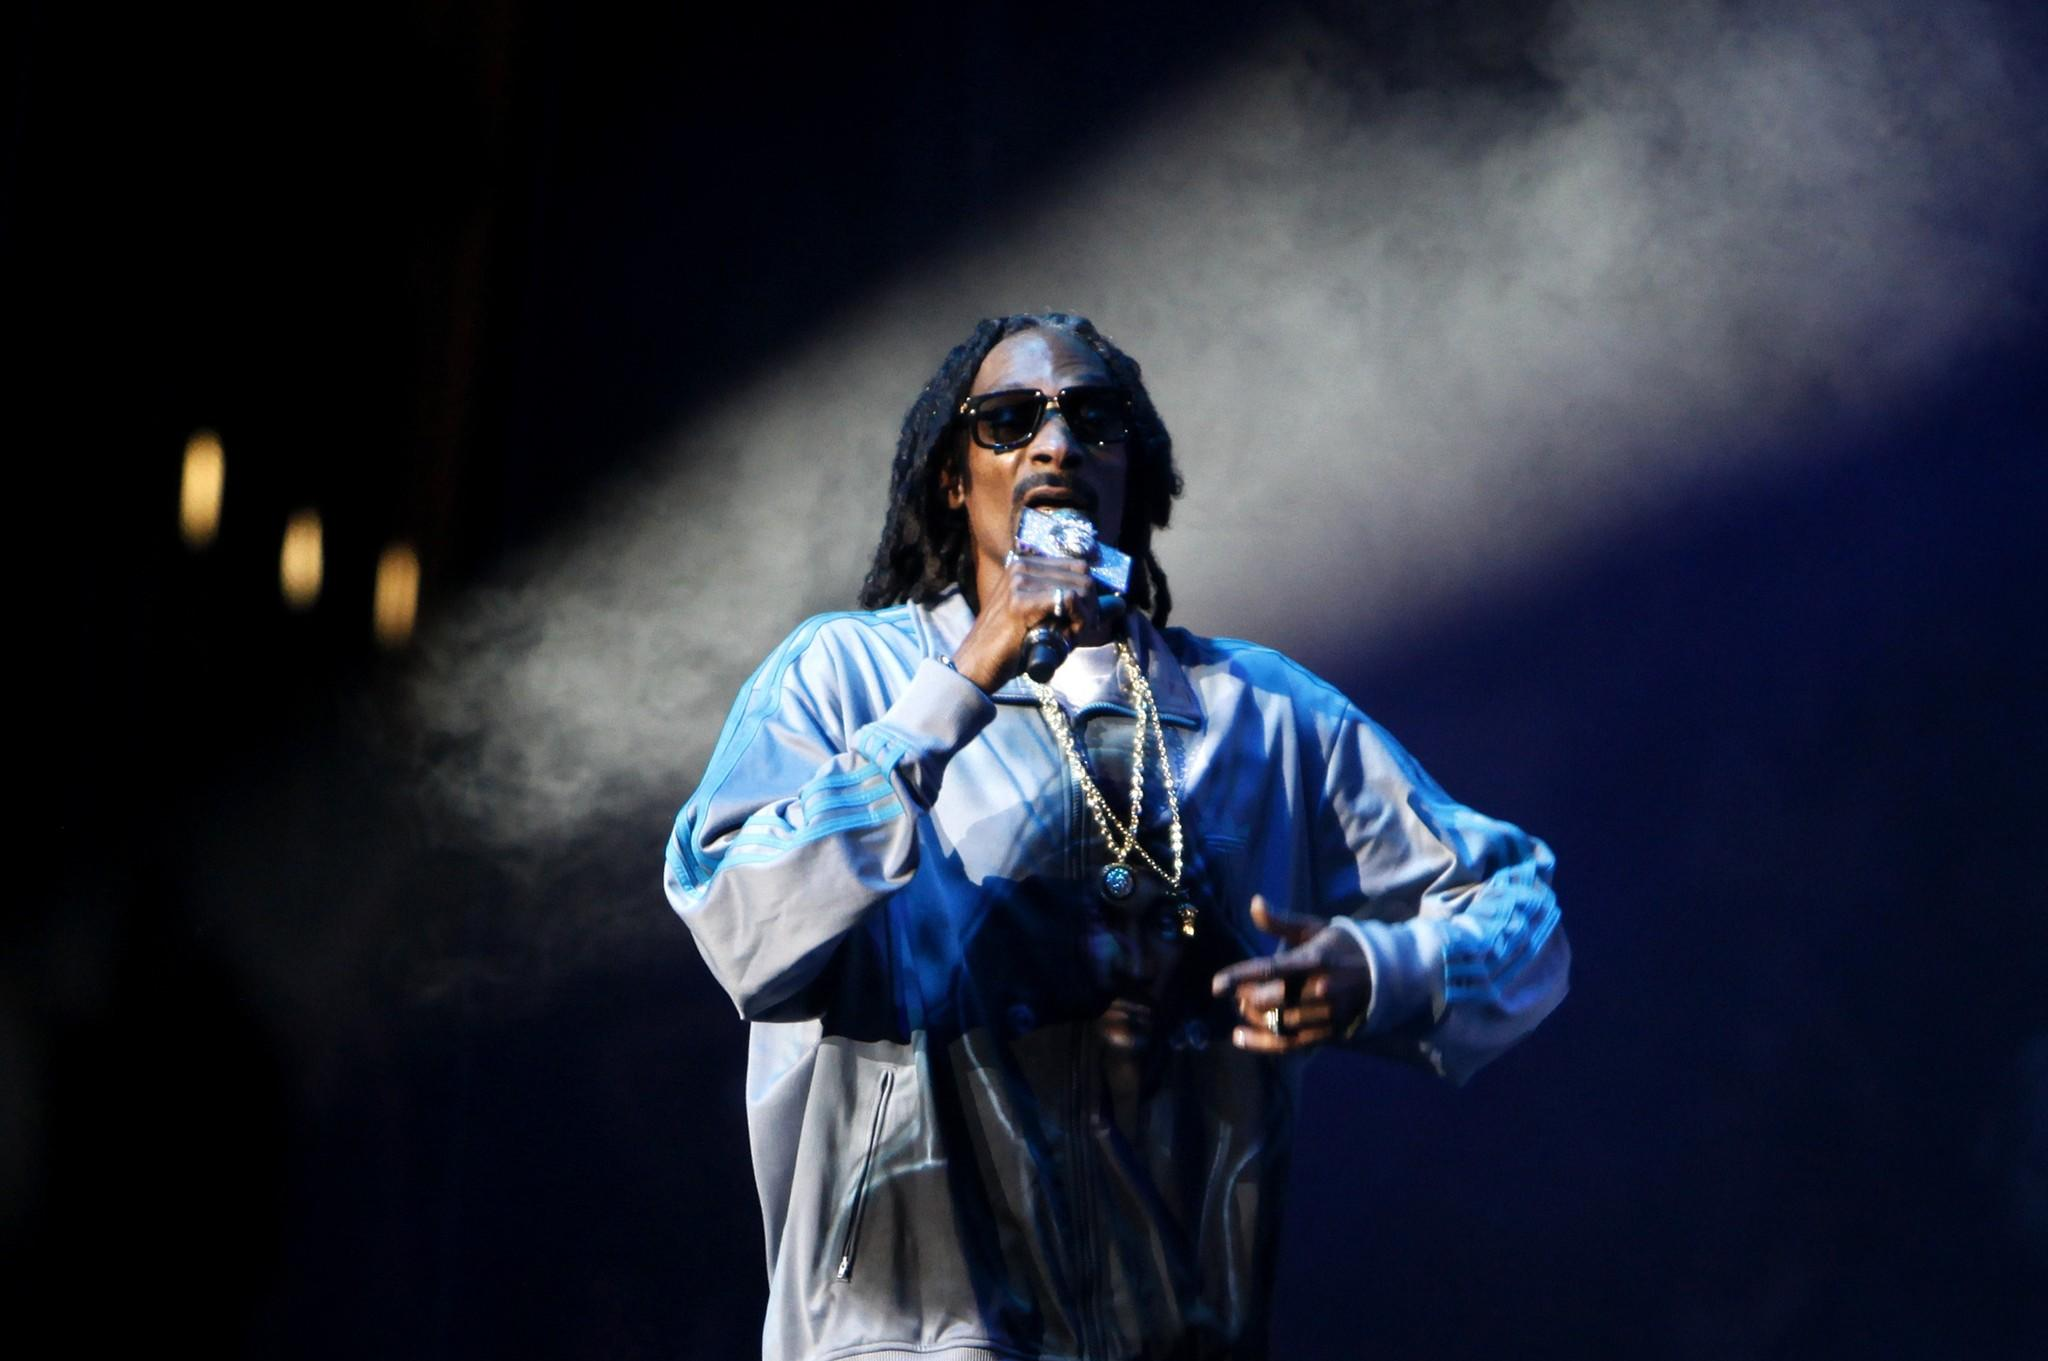 Snoop Dogg onstage at Staples Center in 2013.